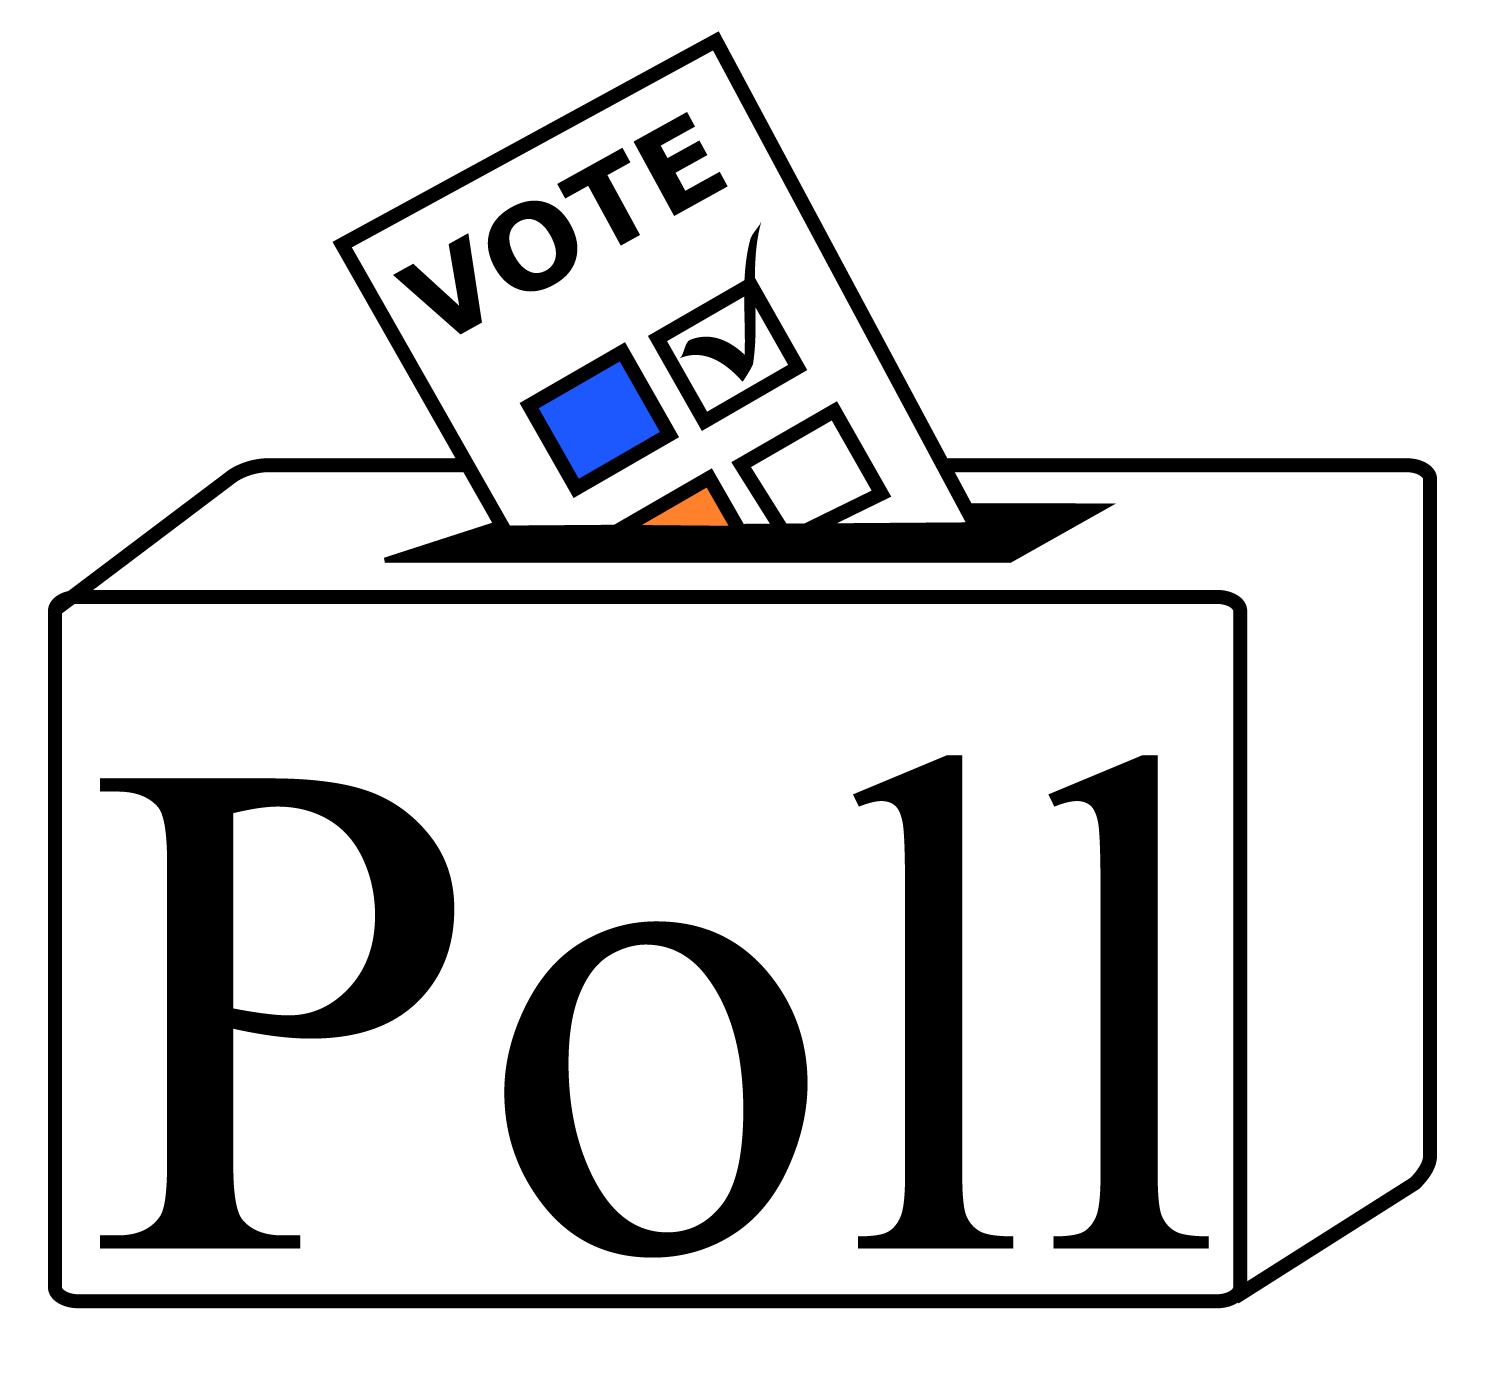 royalty free Your is secret says. Women vote clipart